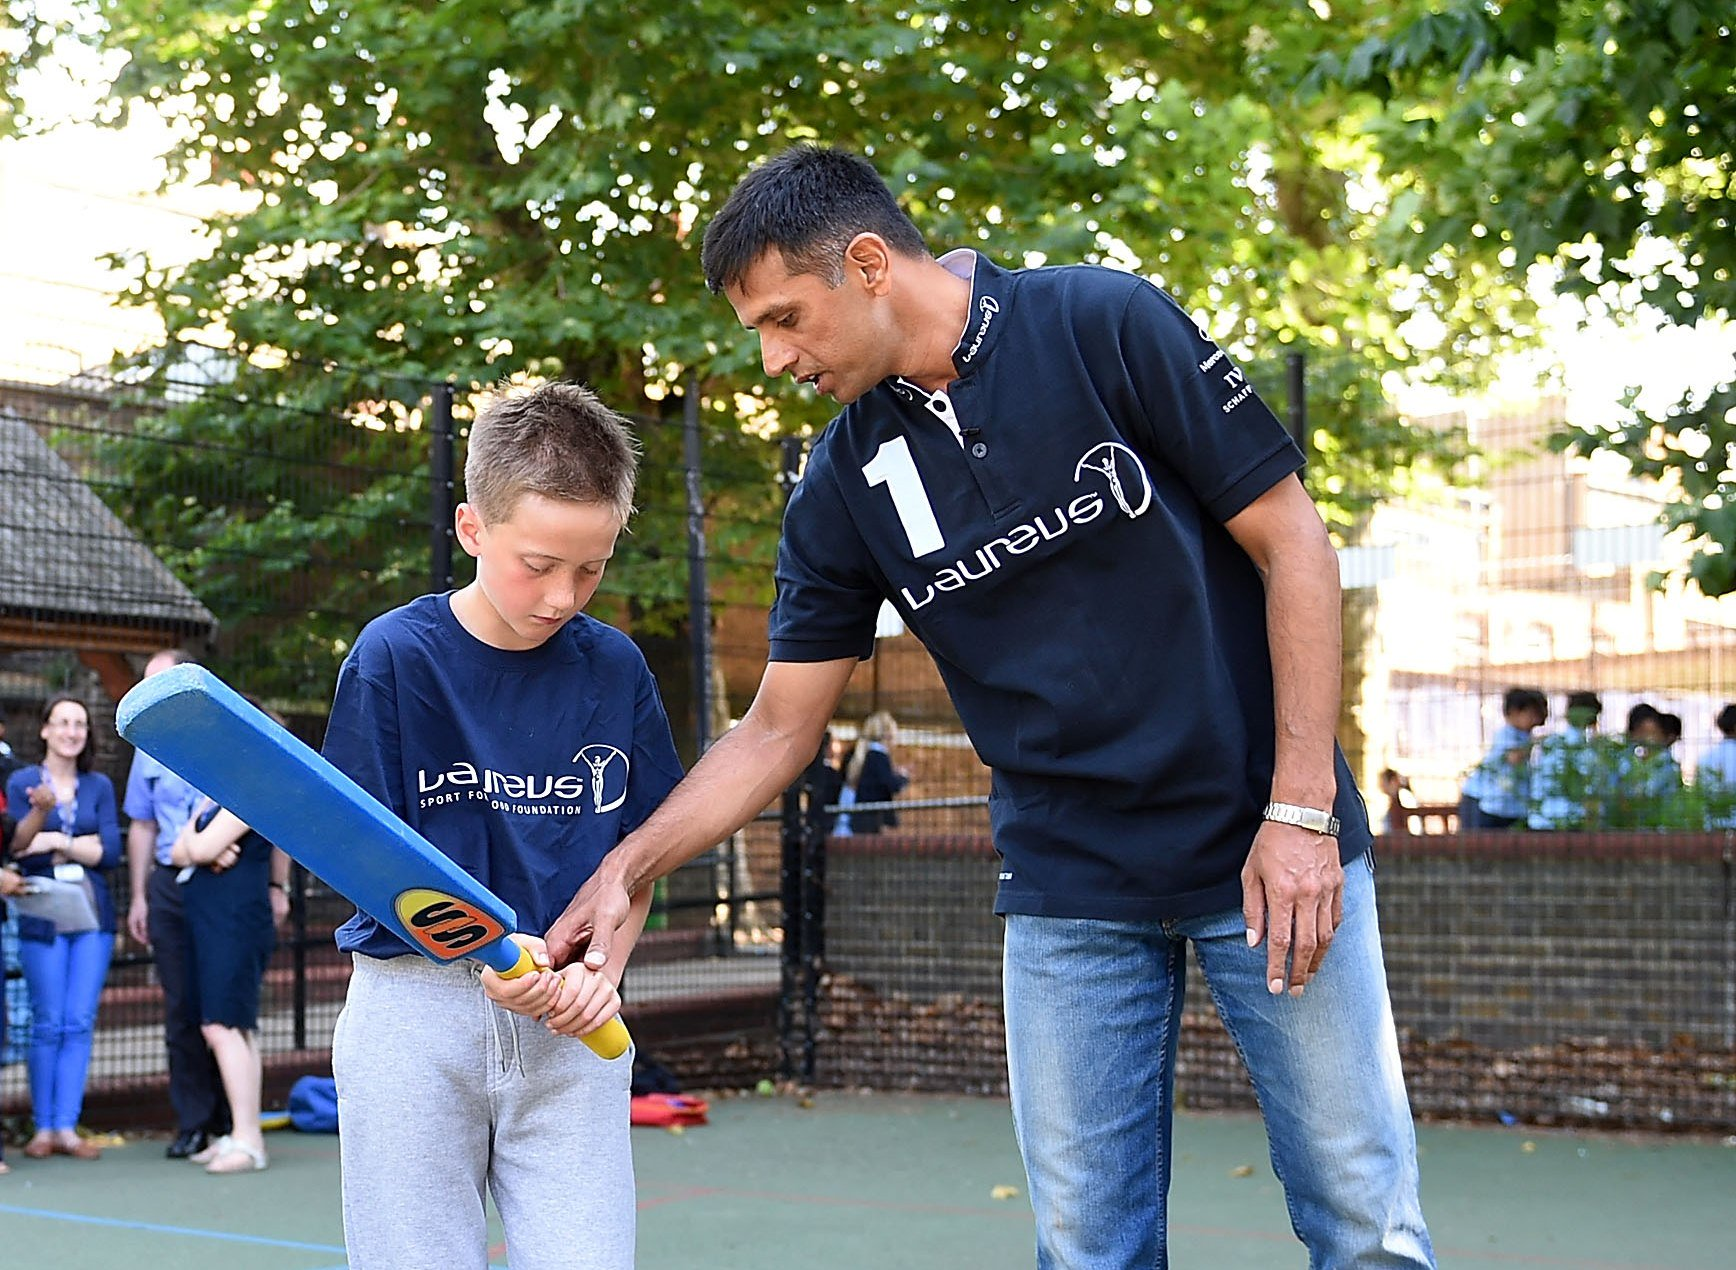 Happy birthday to cricket legend and Laureus Academy Member Rahul Dravid!